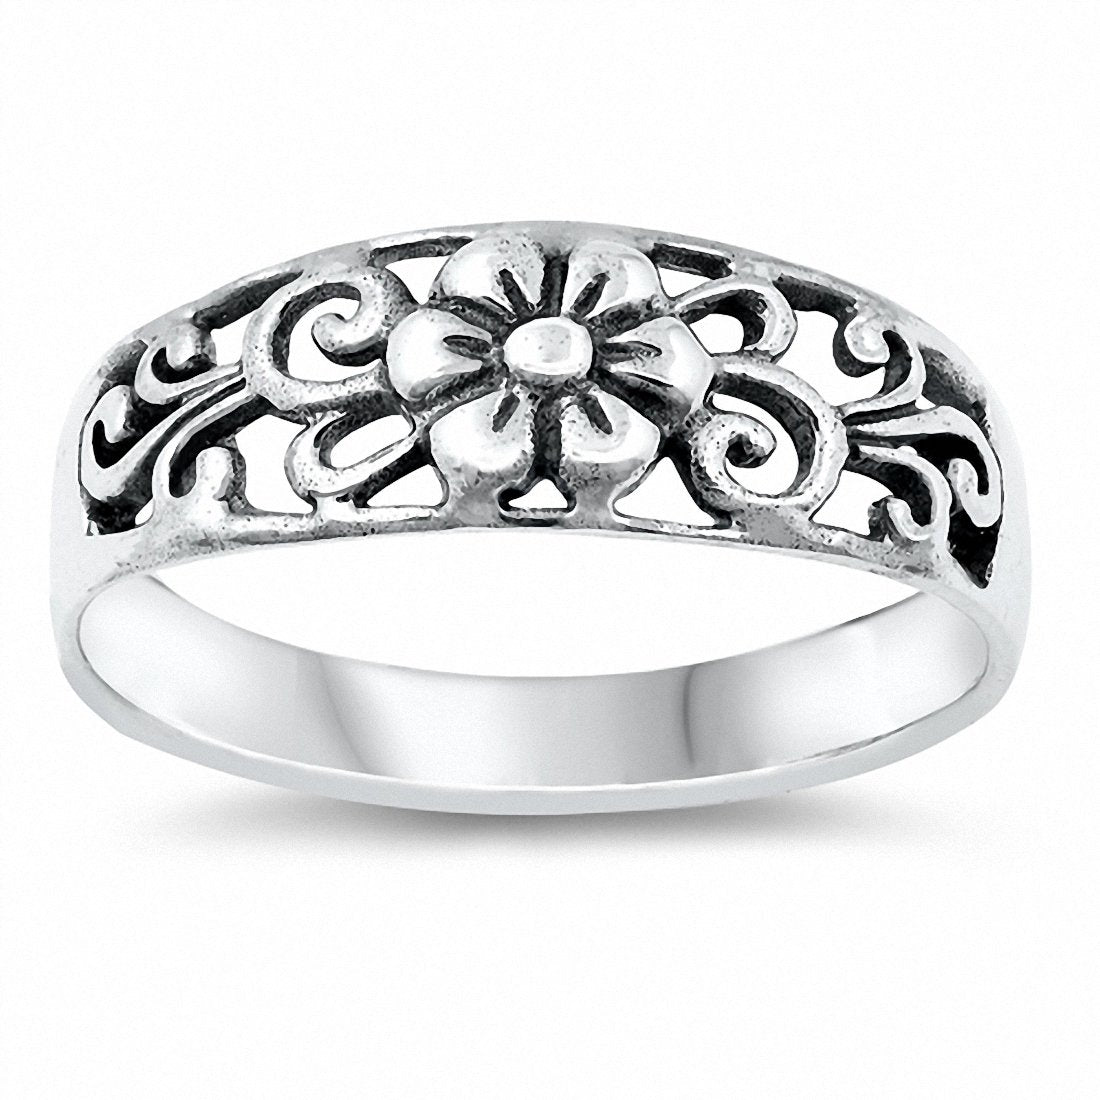 Filigree Flower Band Ring Solid 925 Sterling Silver Choose Color